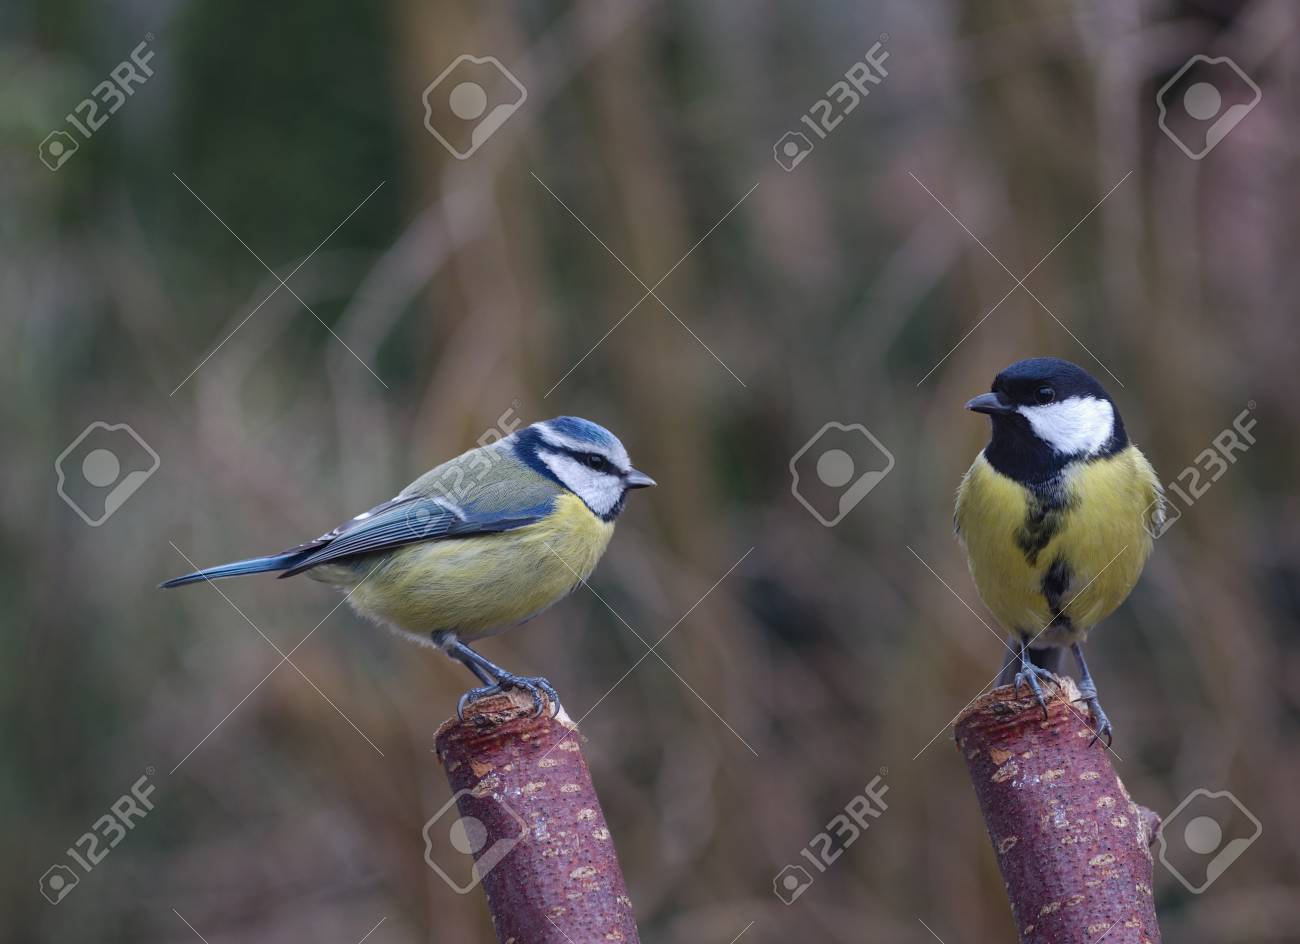 Two Bird Tit On Tree Background Stock Photo, Picture And Royalty